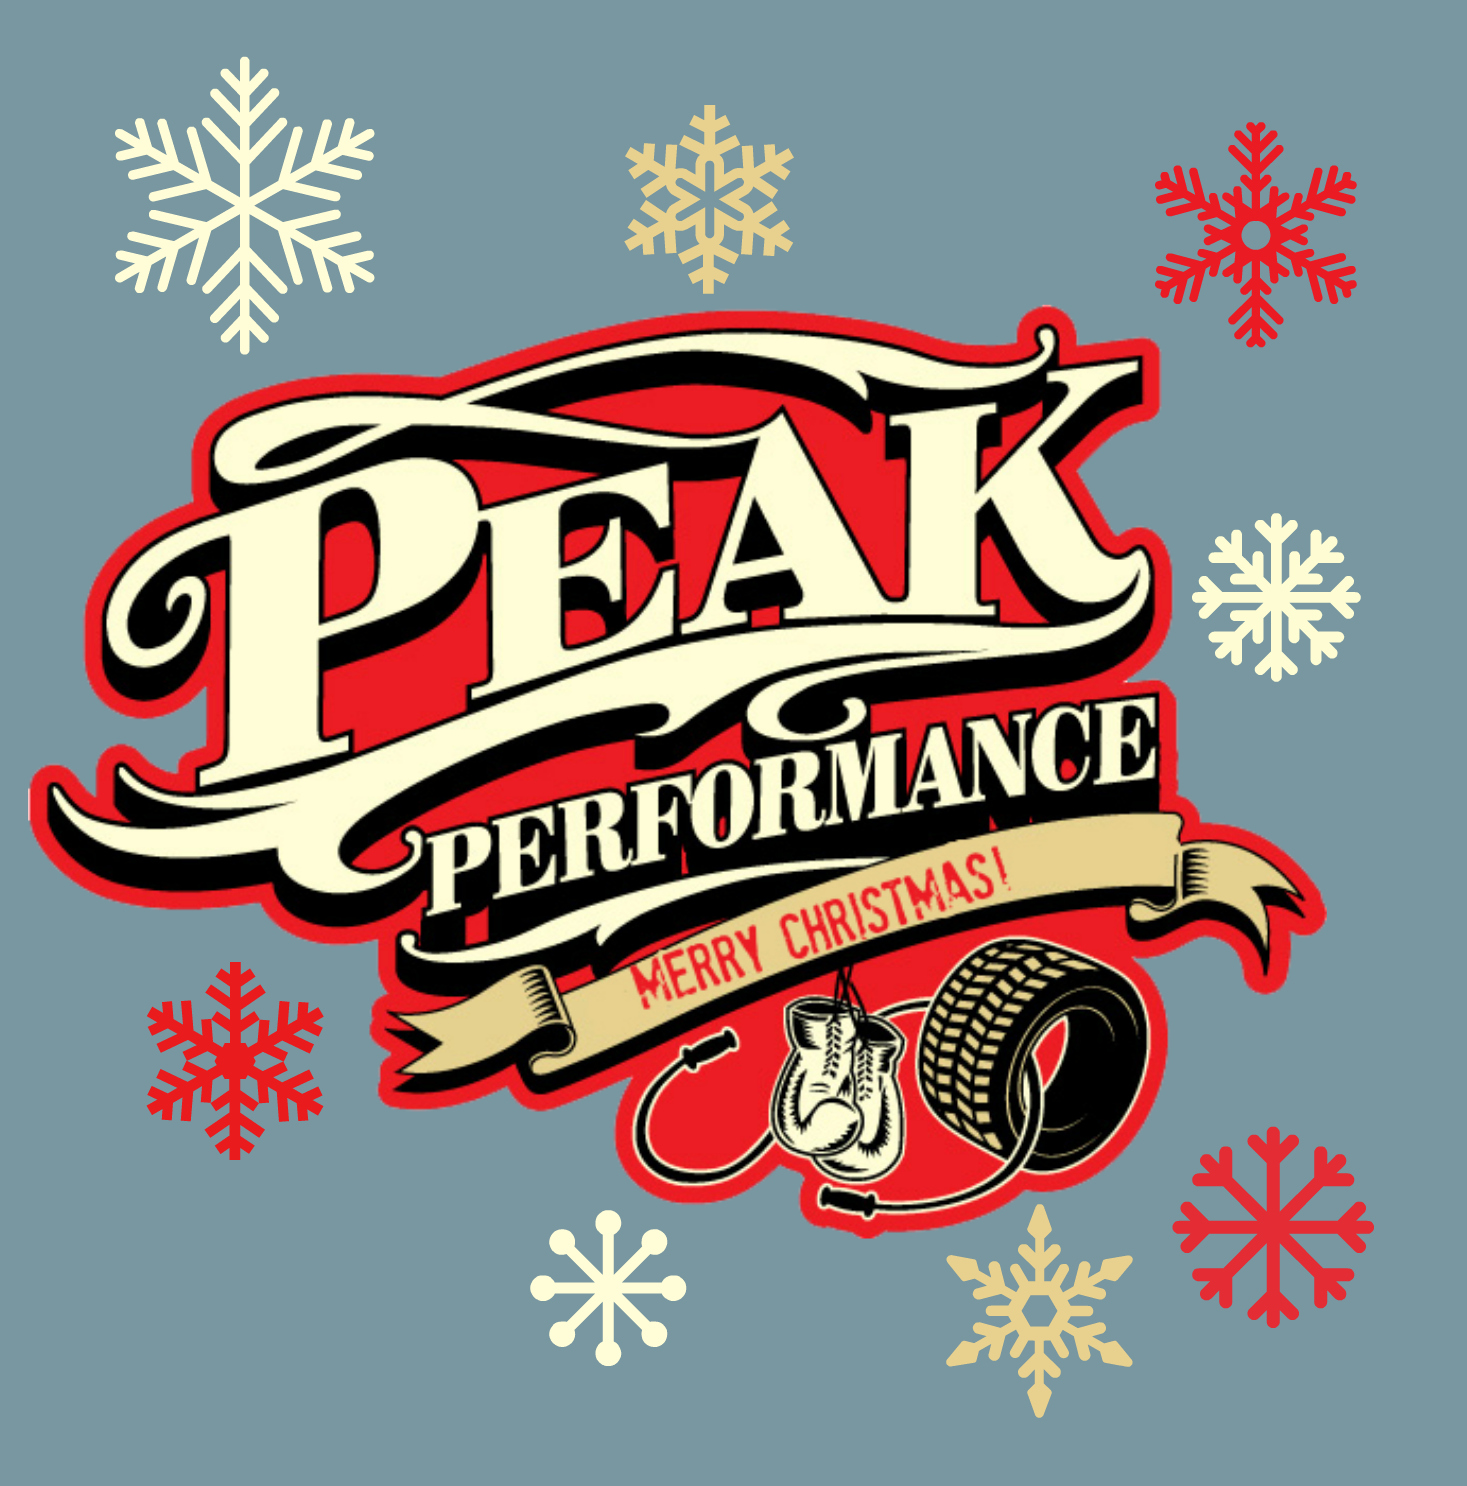 Peak performance christmas cover